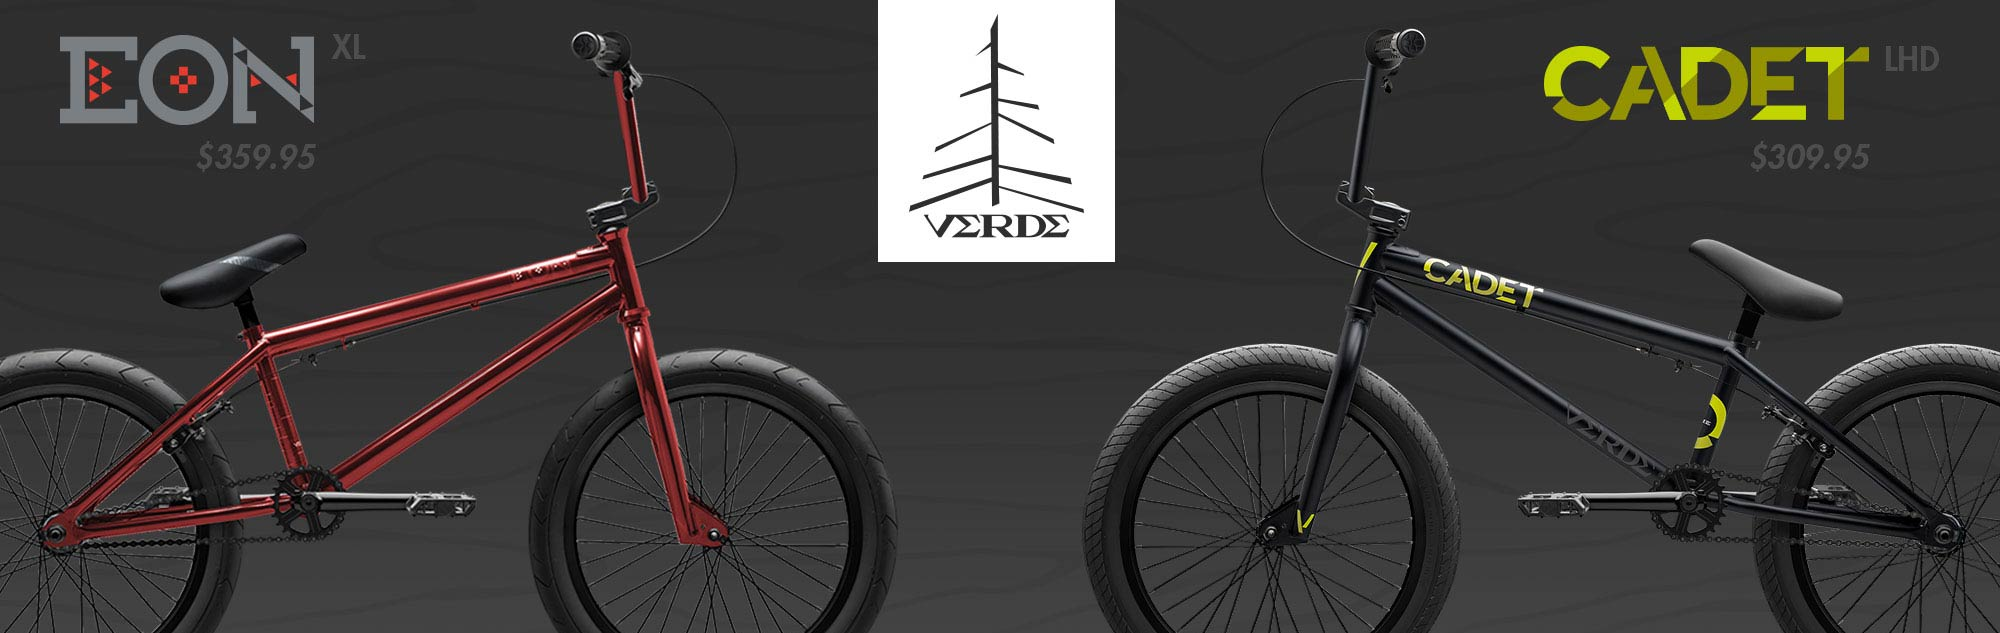 Verde BMX Bikes For sale at Albe's BMX Bike Shop Online